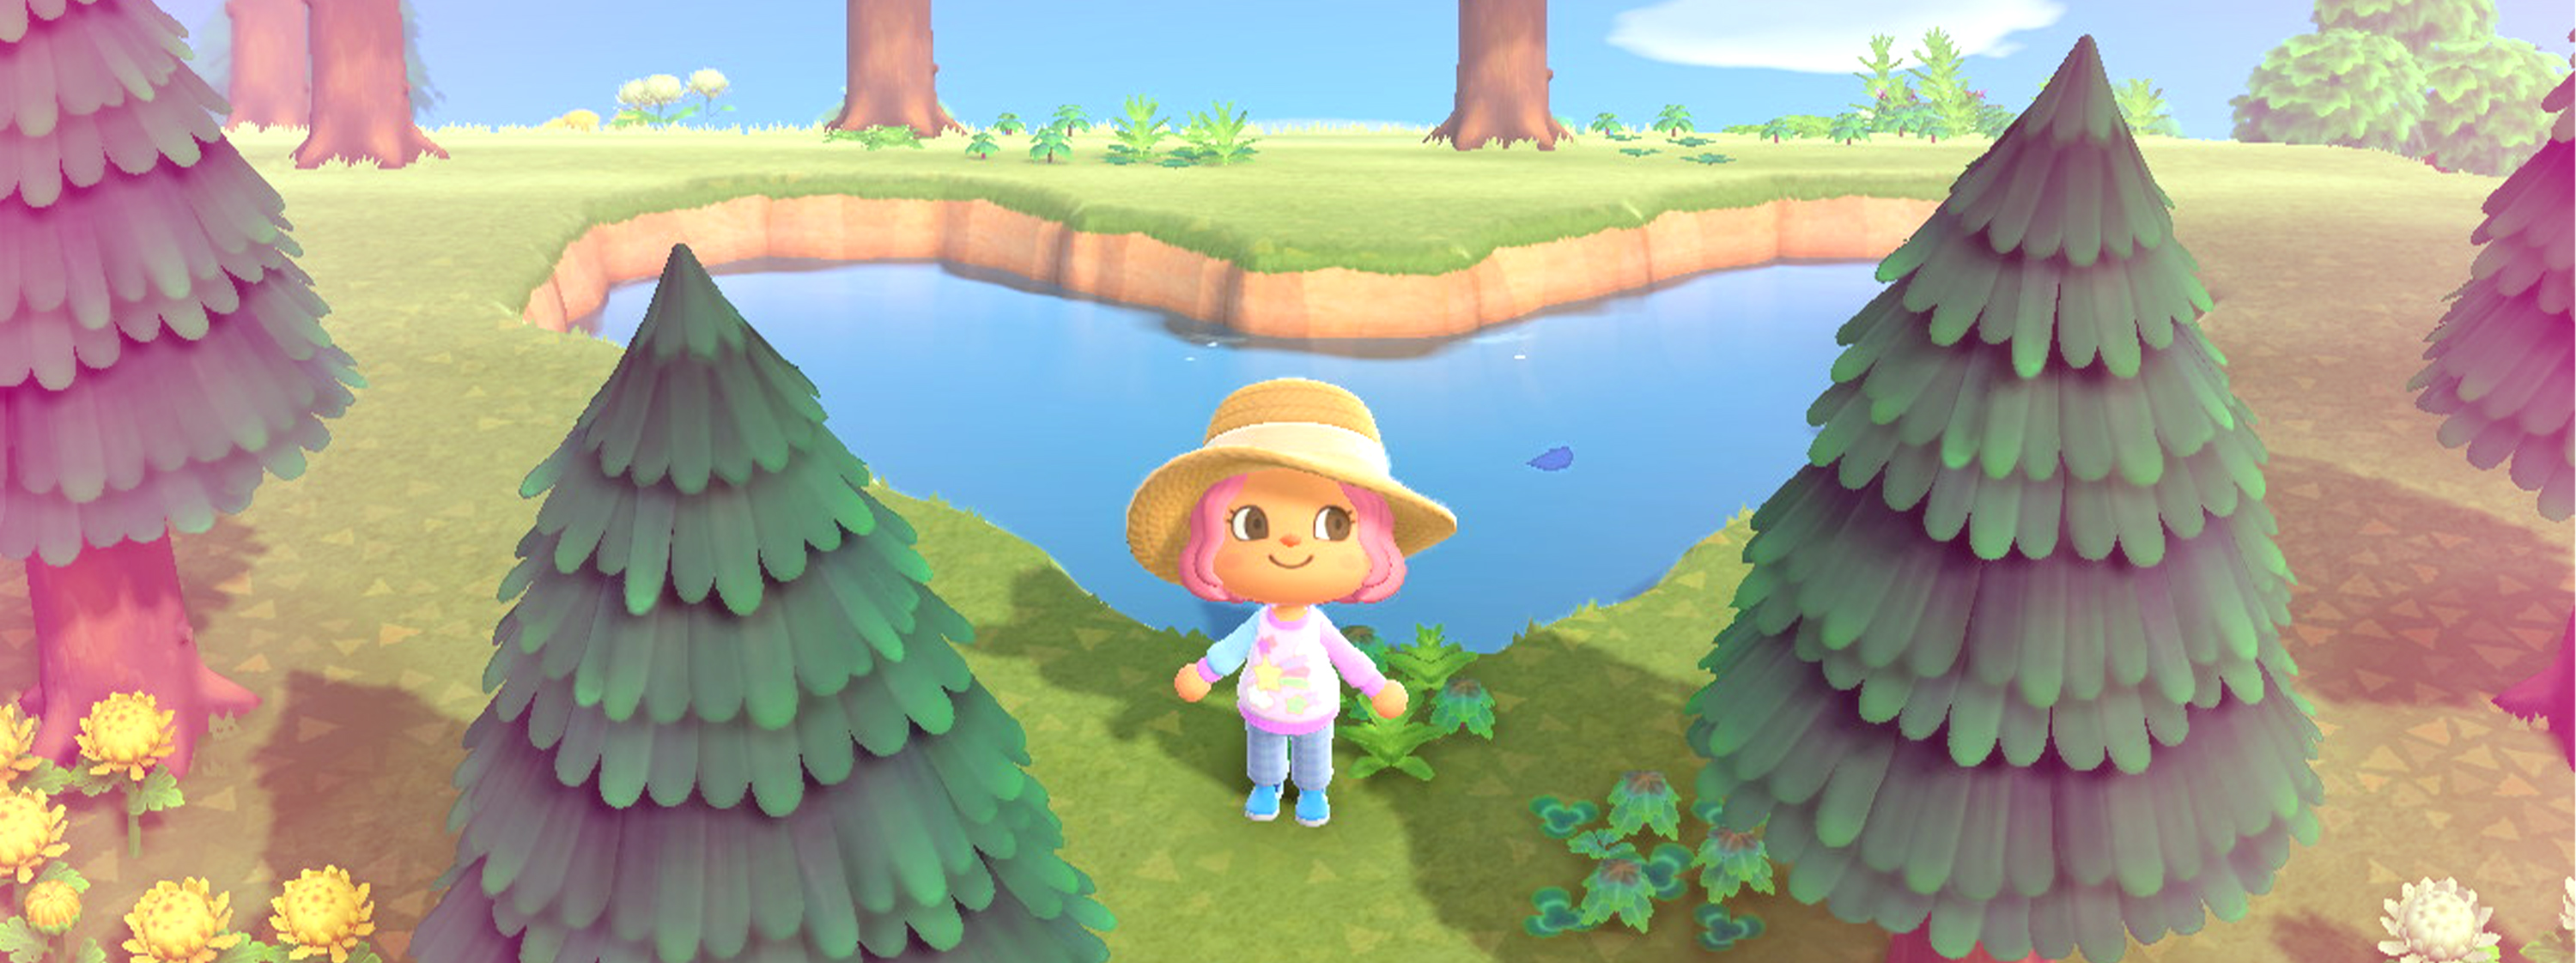 Screen shot from Animal Crossing New Horizons